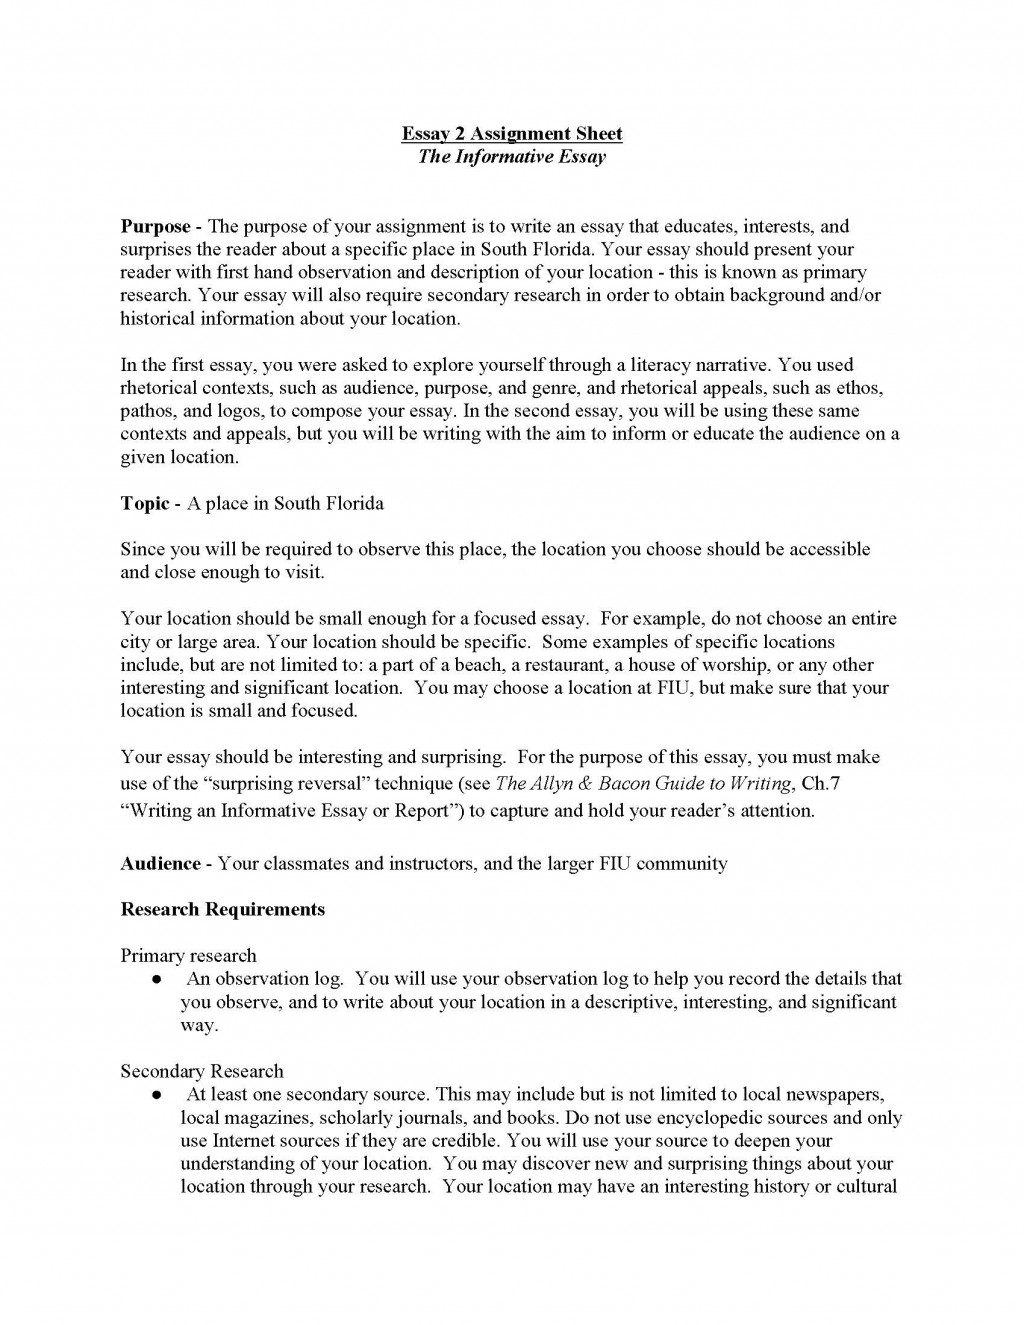 002 Essay Example Informative Topics Unit Assignment Page 1 Remarkable 2018 Prompts For High School Prompt 4th Grade Large